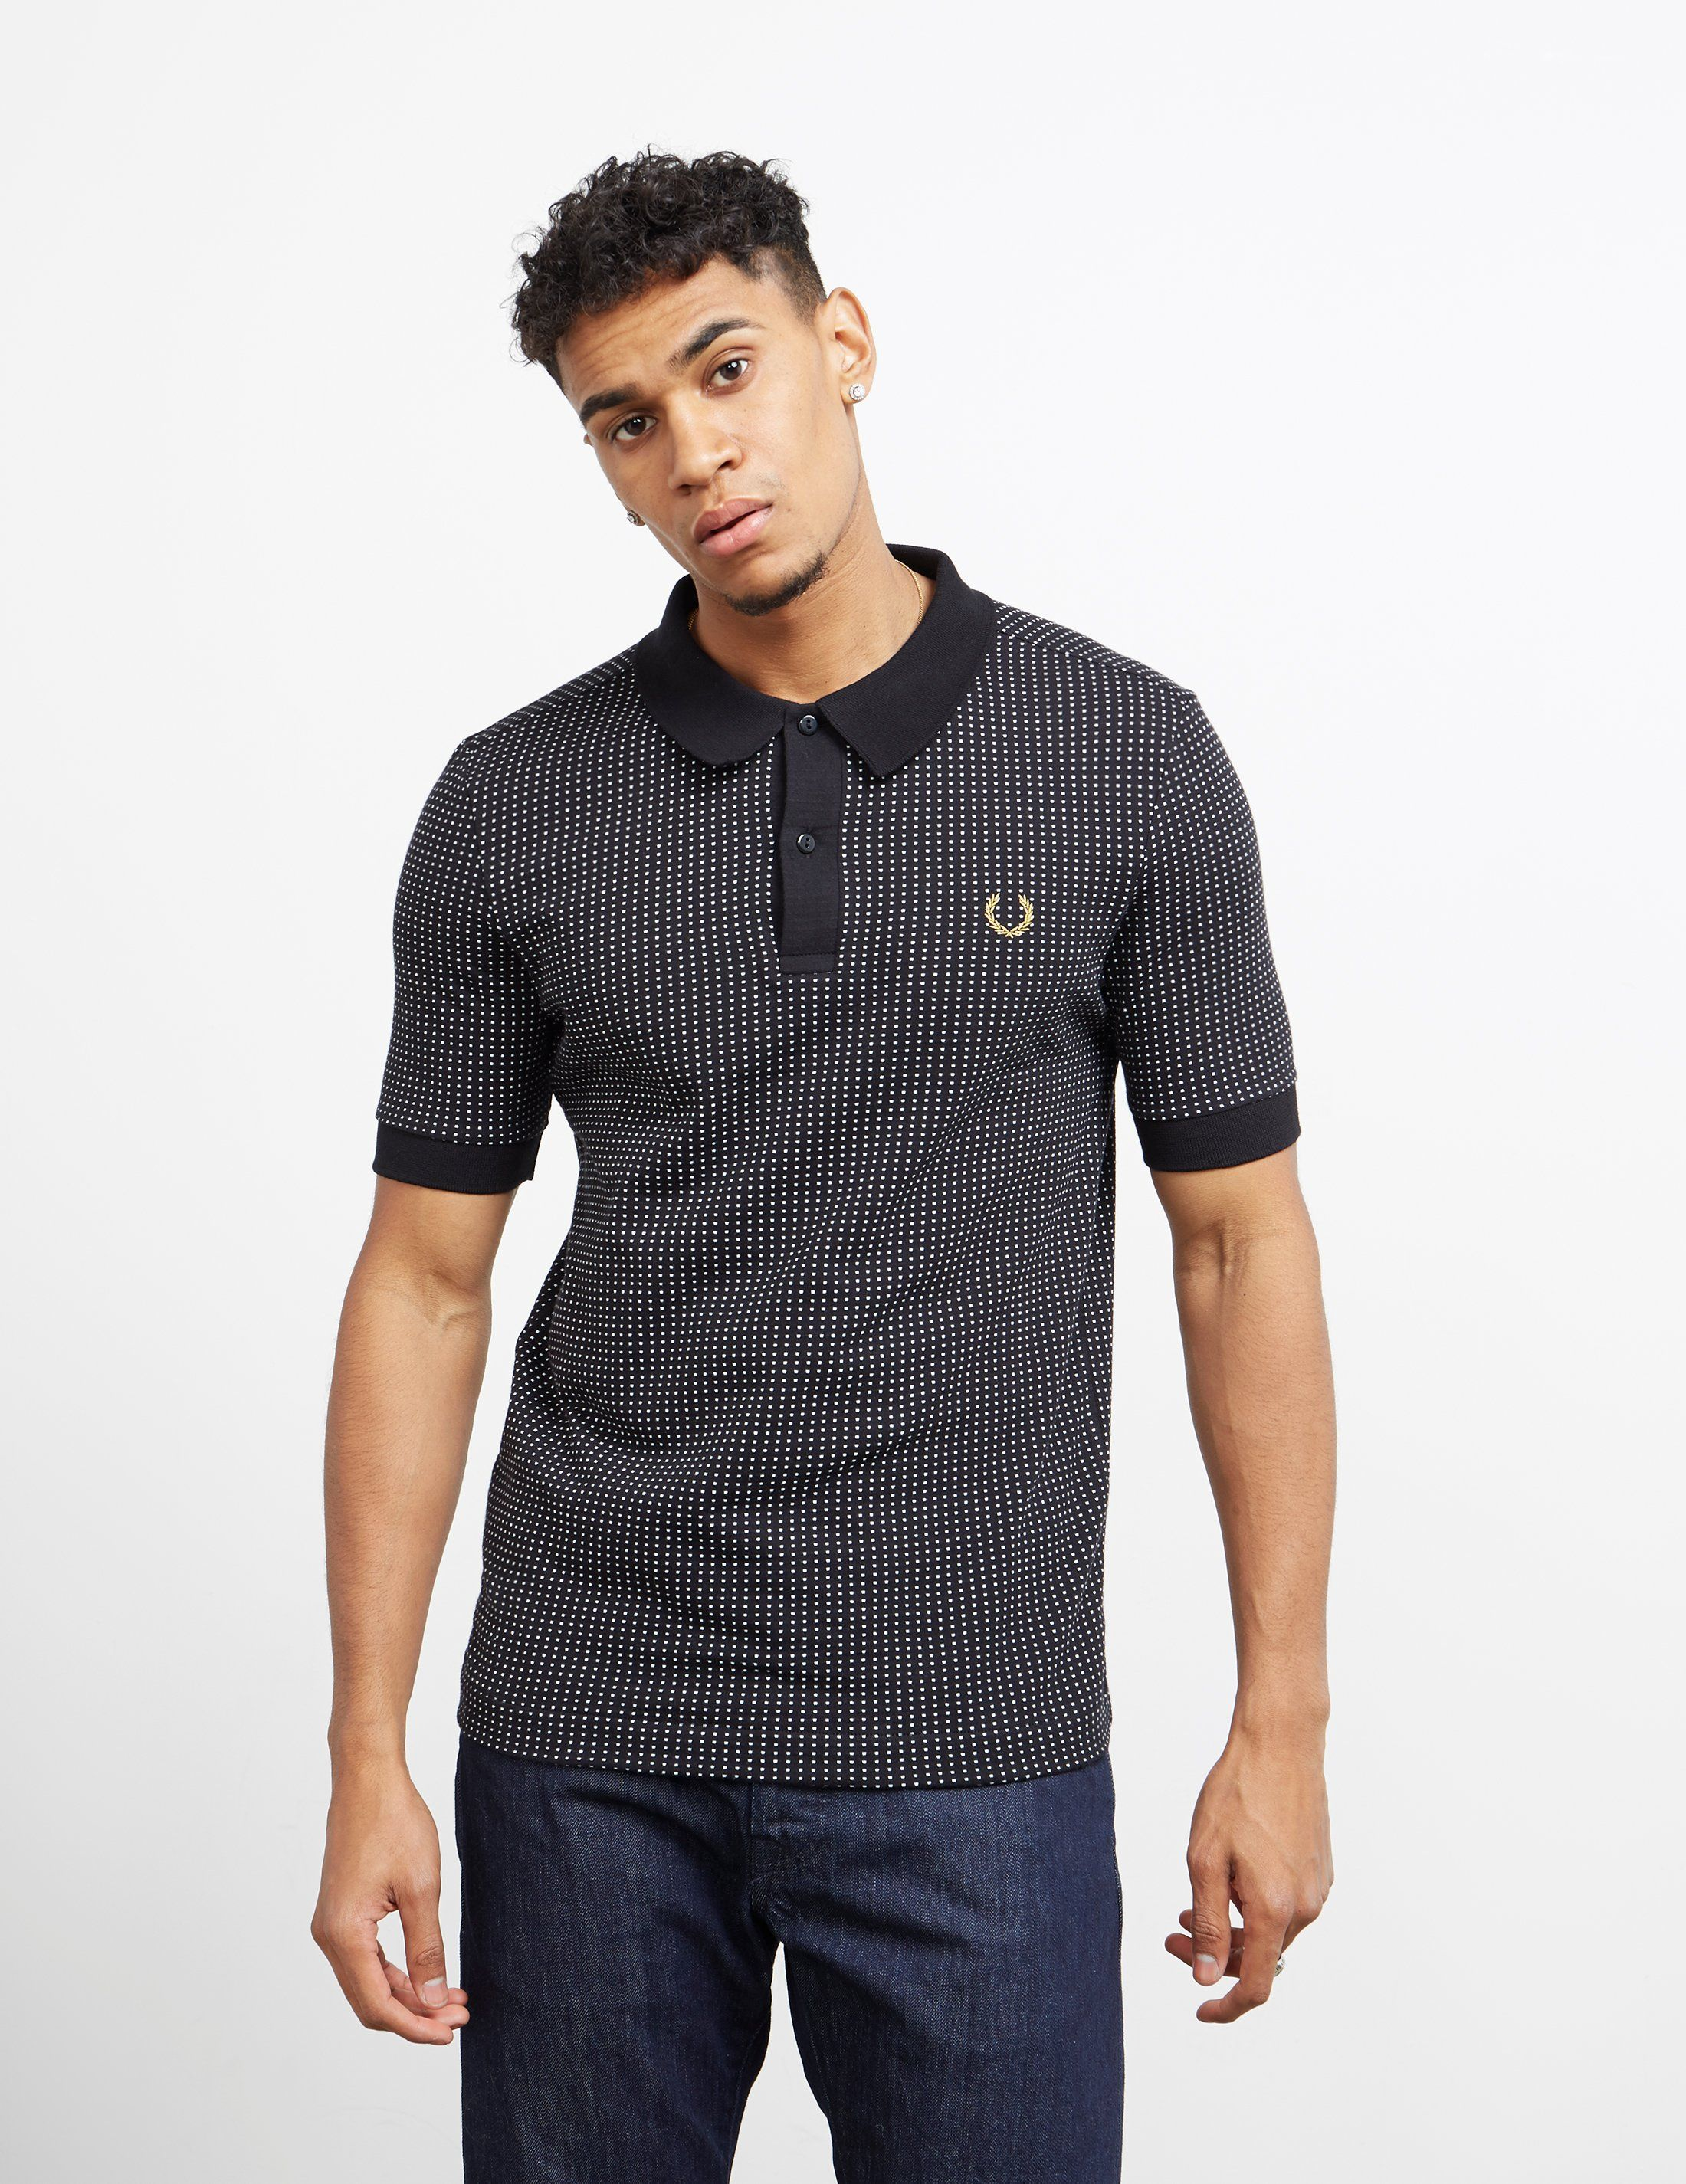 Fred Perry x Miles Kane Short Sleeve Jacquard Polo Shirt